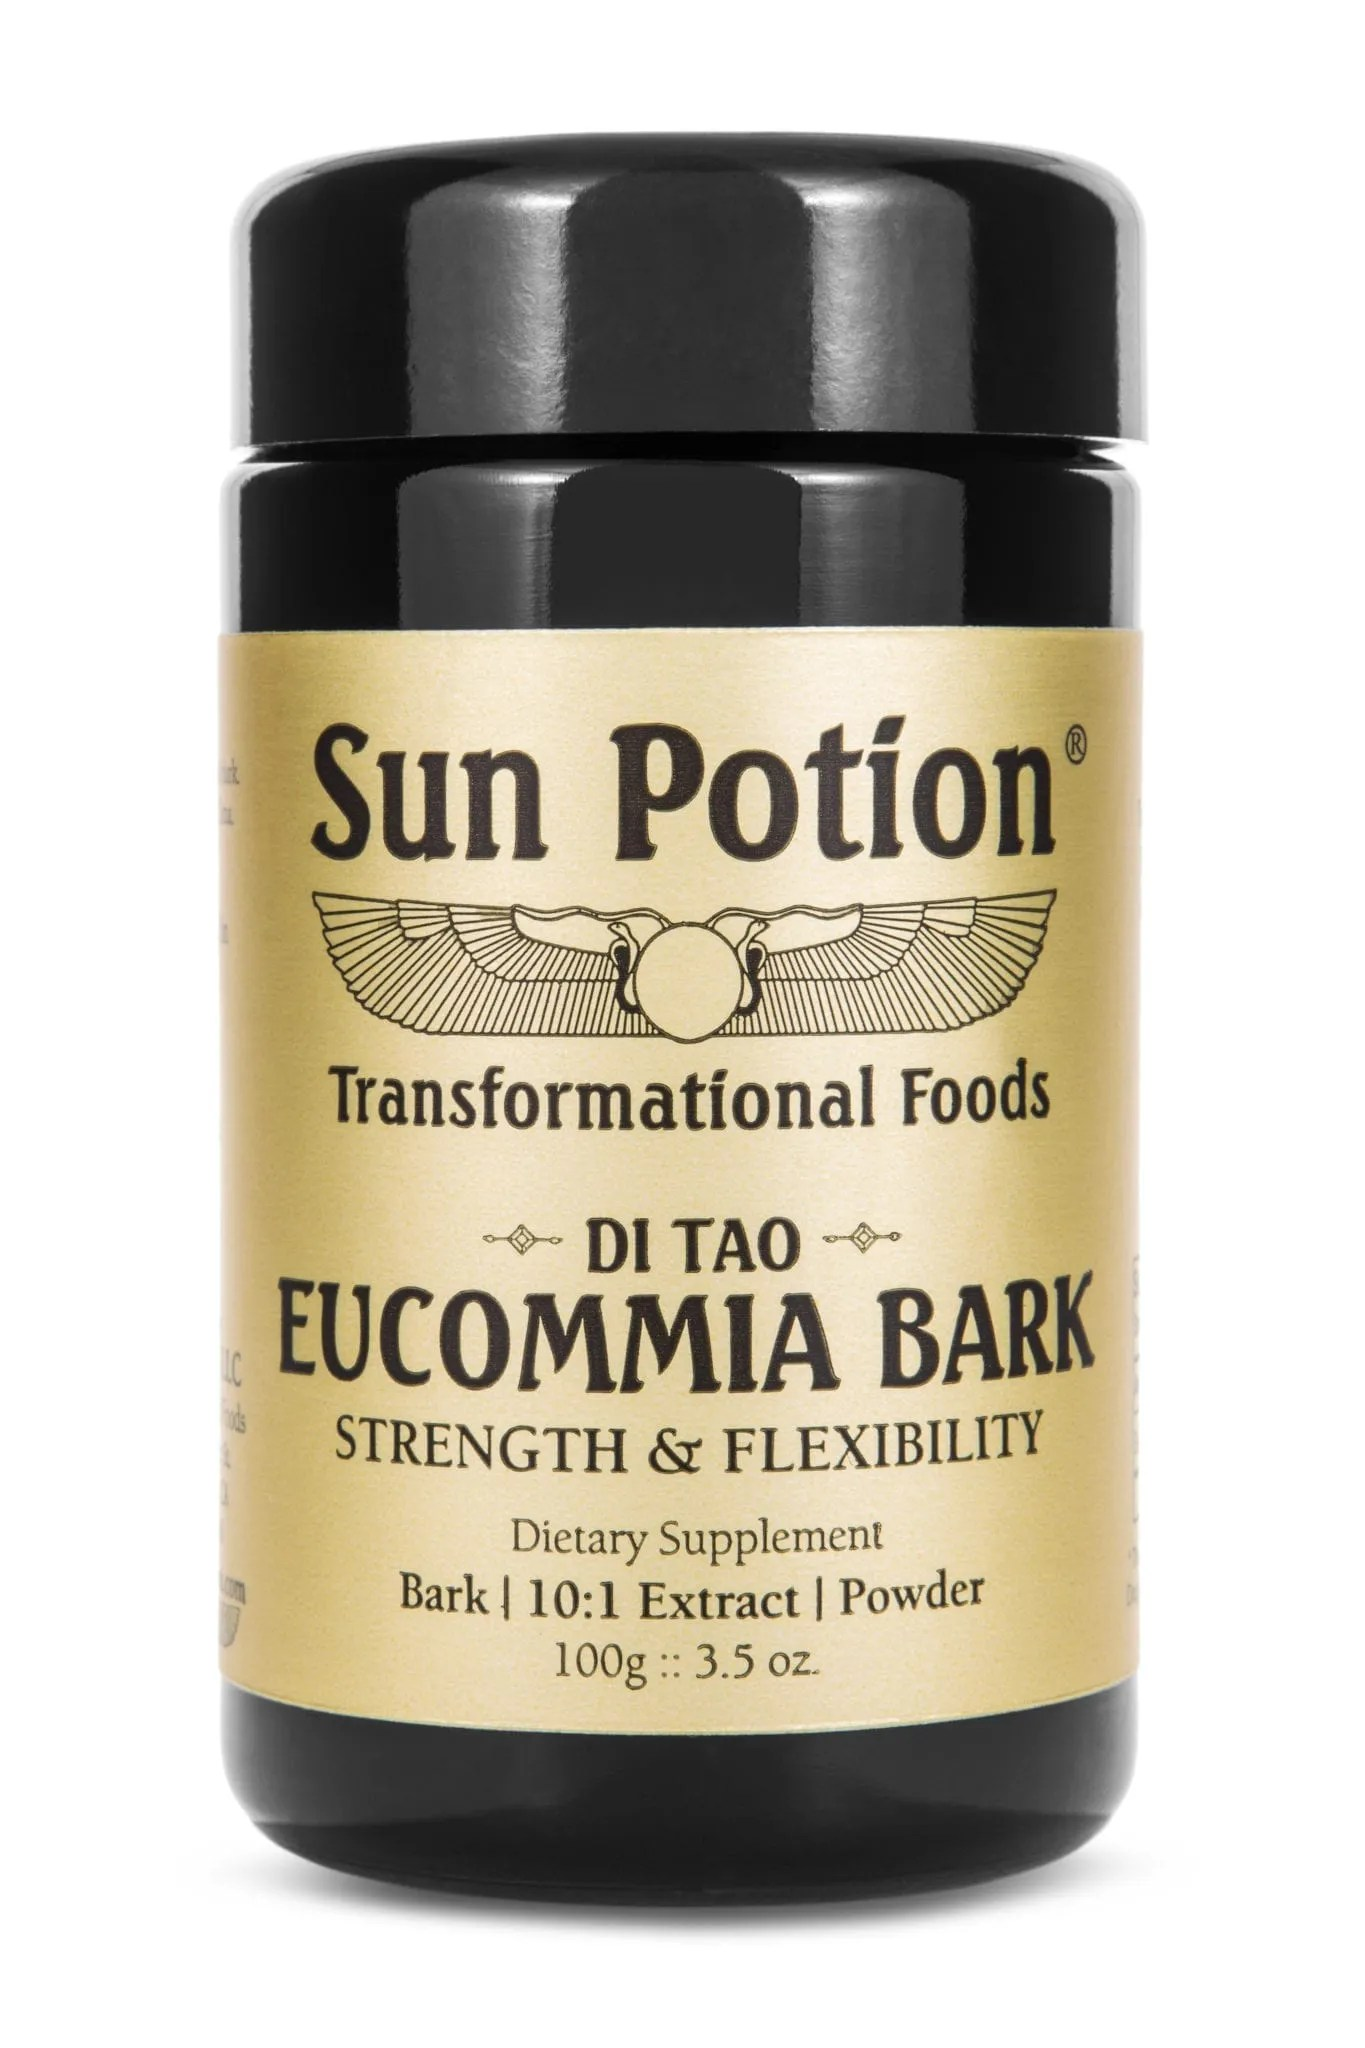 Sun Potion Eucommia Bark Front View